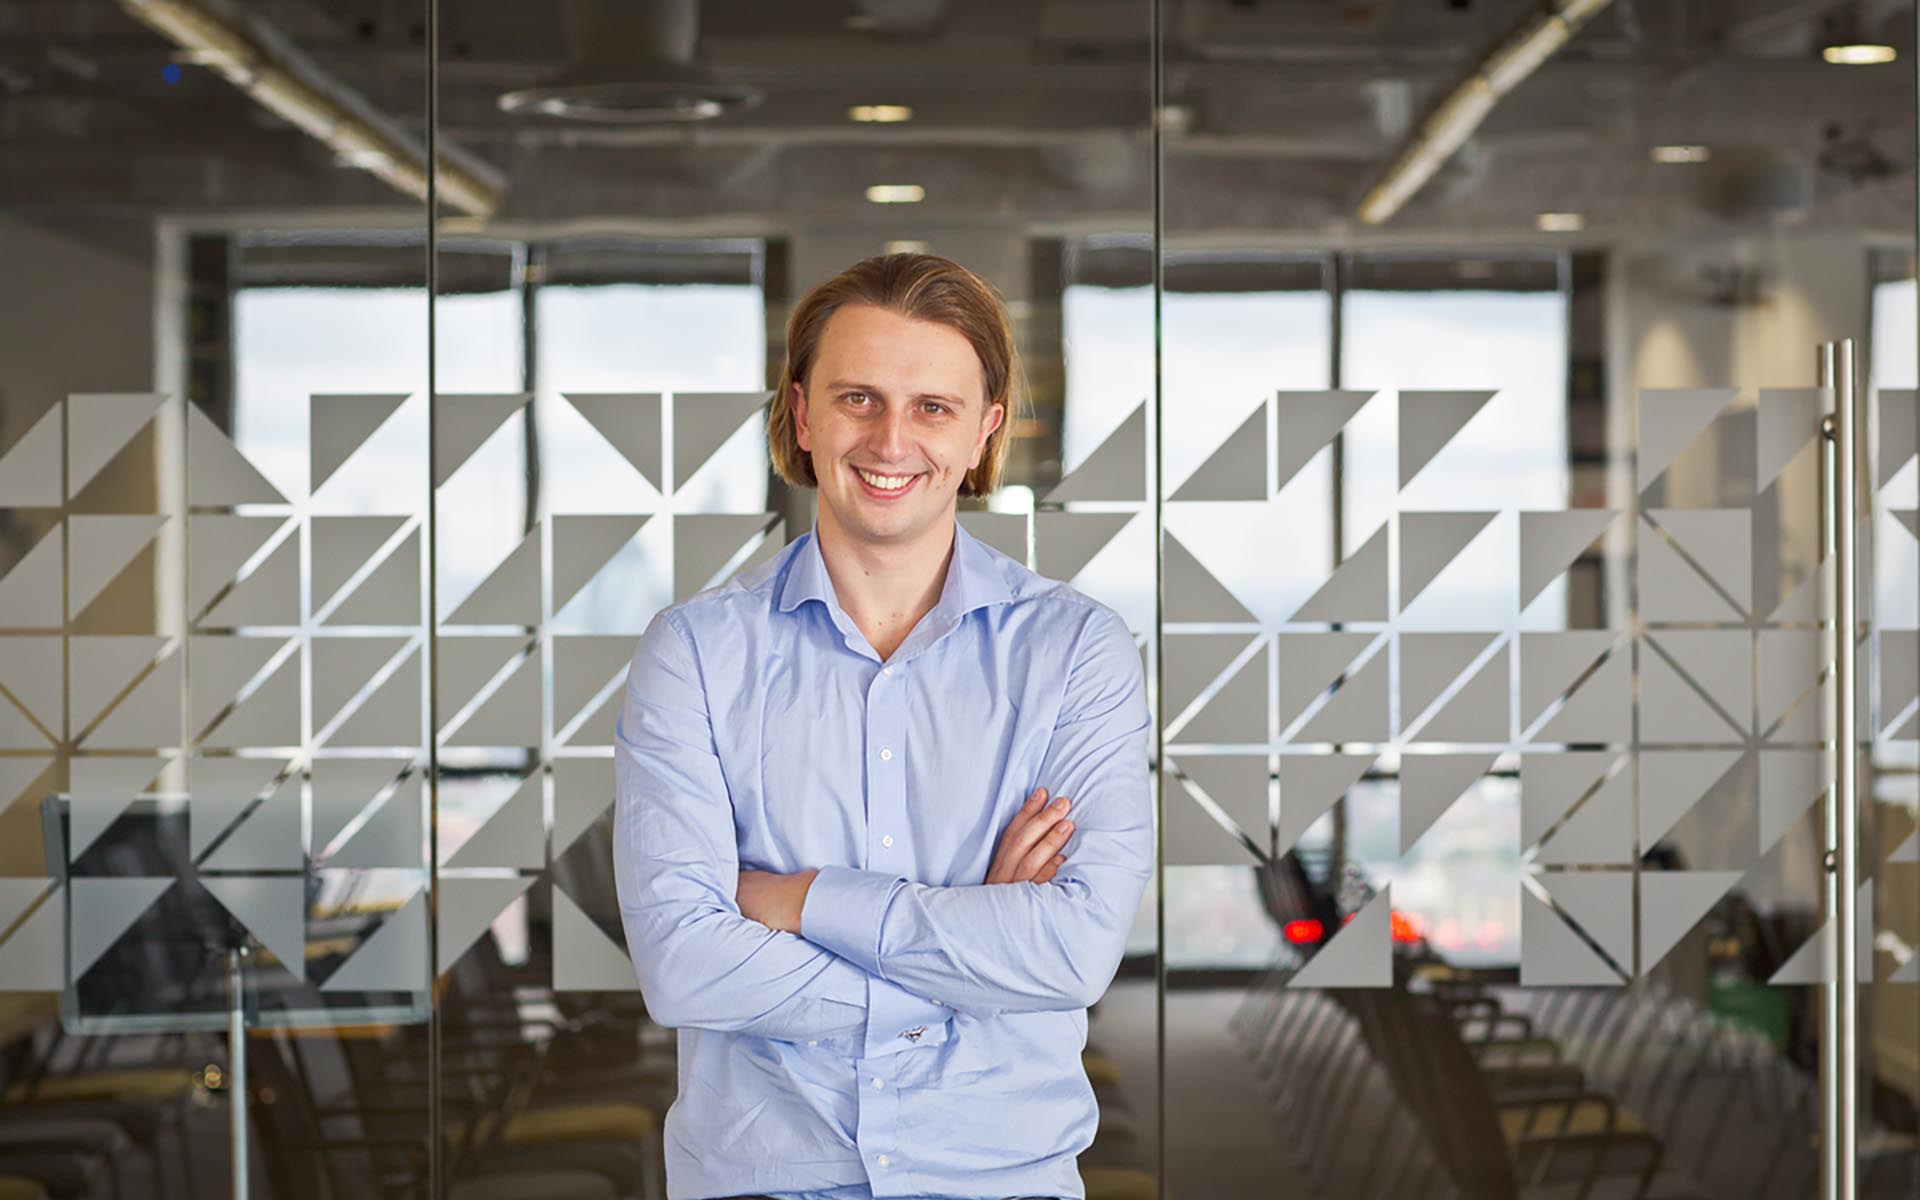 Revolut CEO: 'Bitcoin is definitely not a fraud'